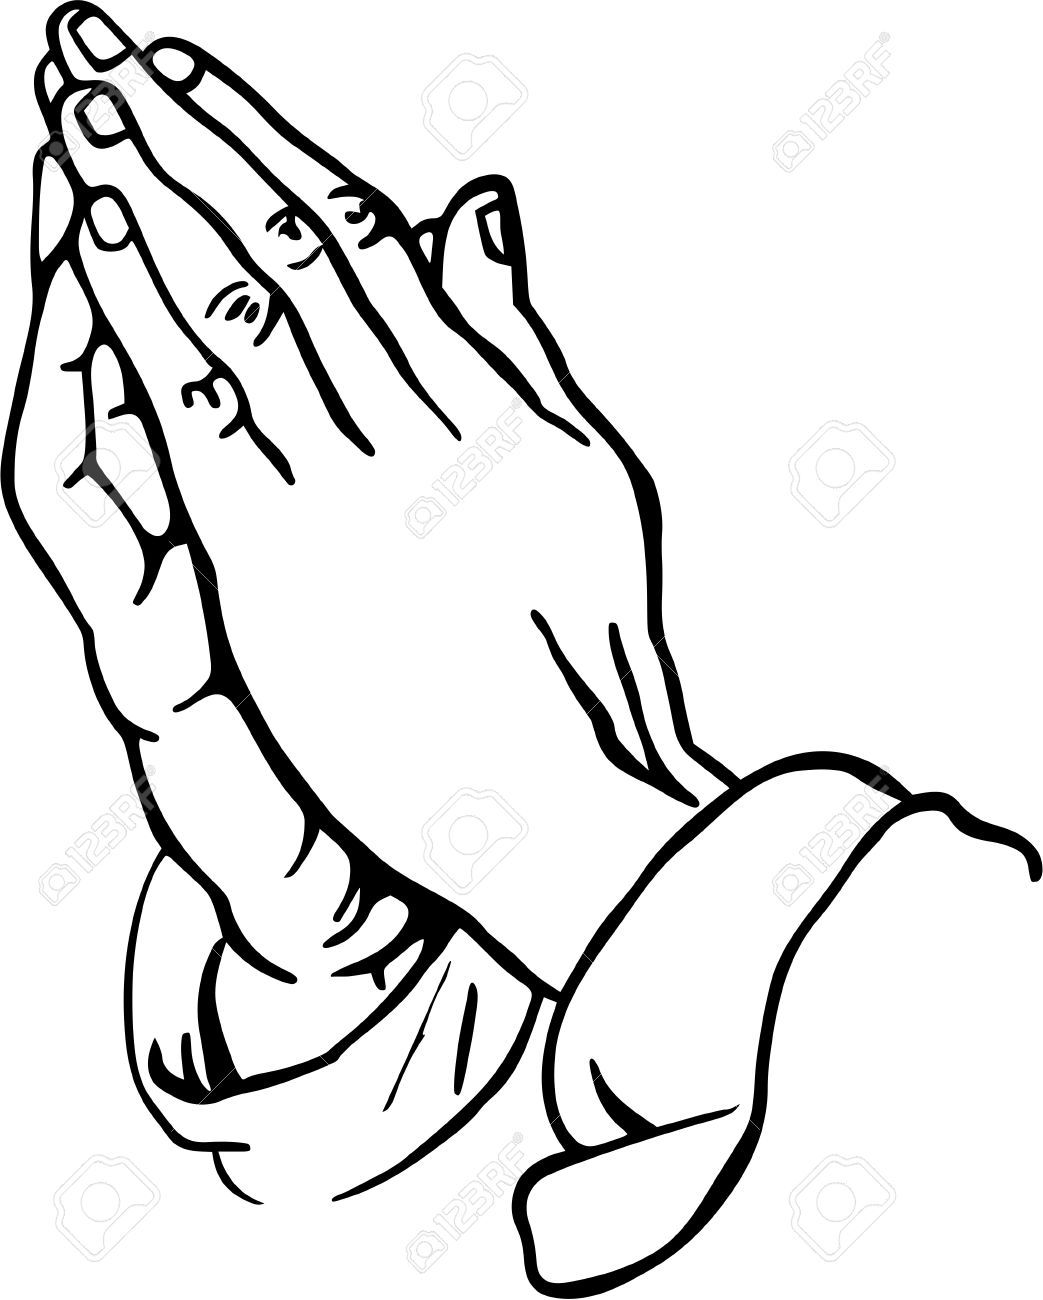 praying hands clipart stock photo picture and royalty free image rh pinterest com